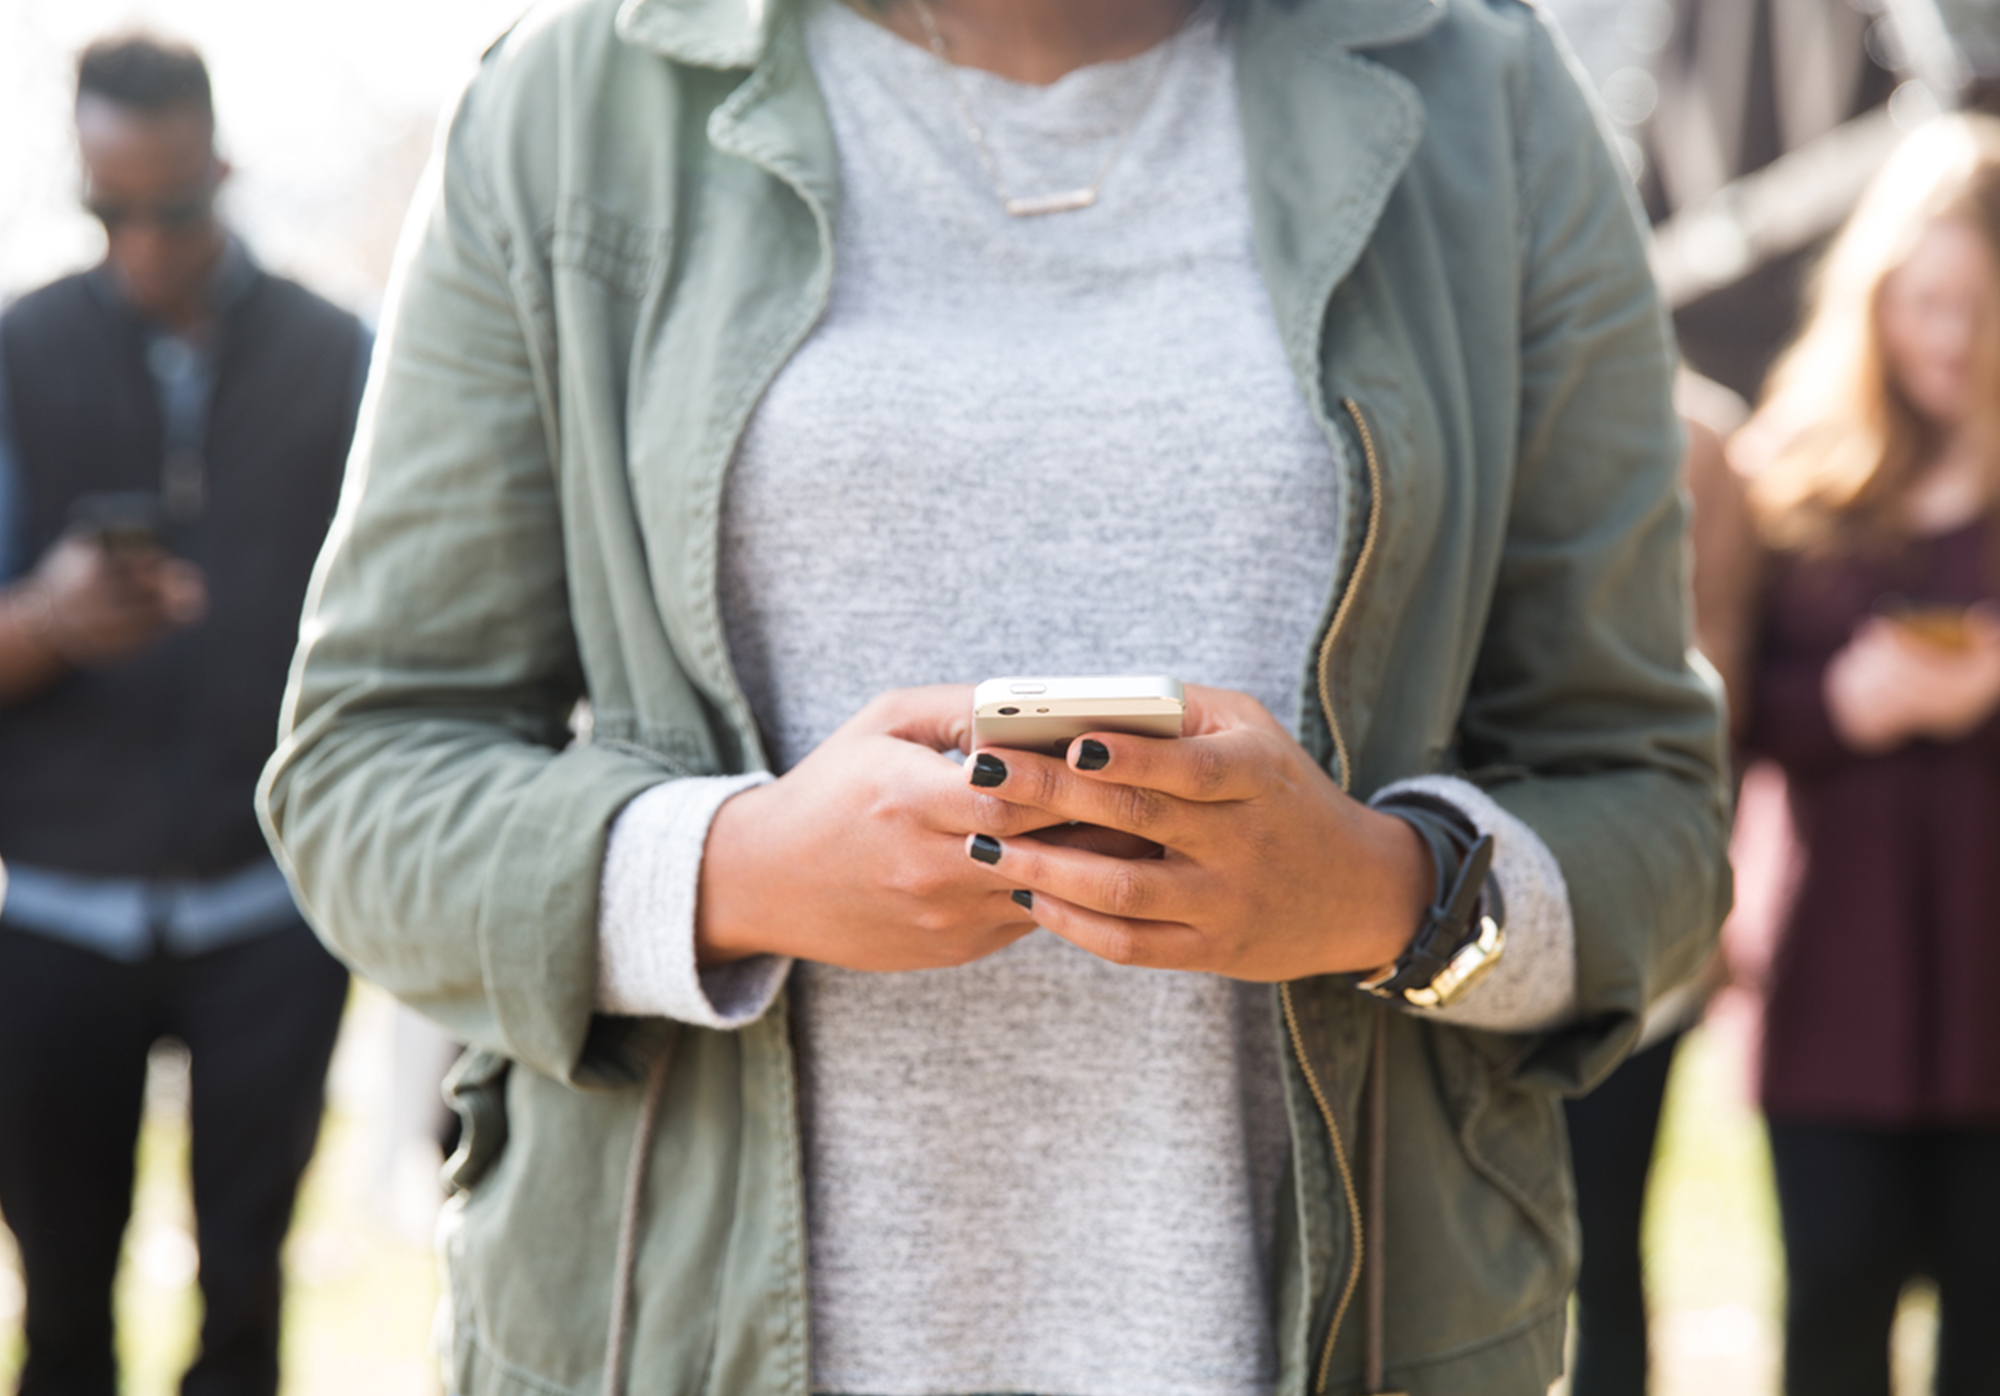 Essential Social Media Guidelines For Church Leaders